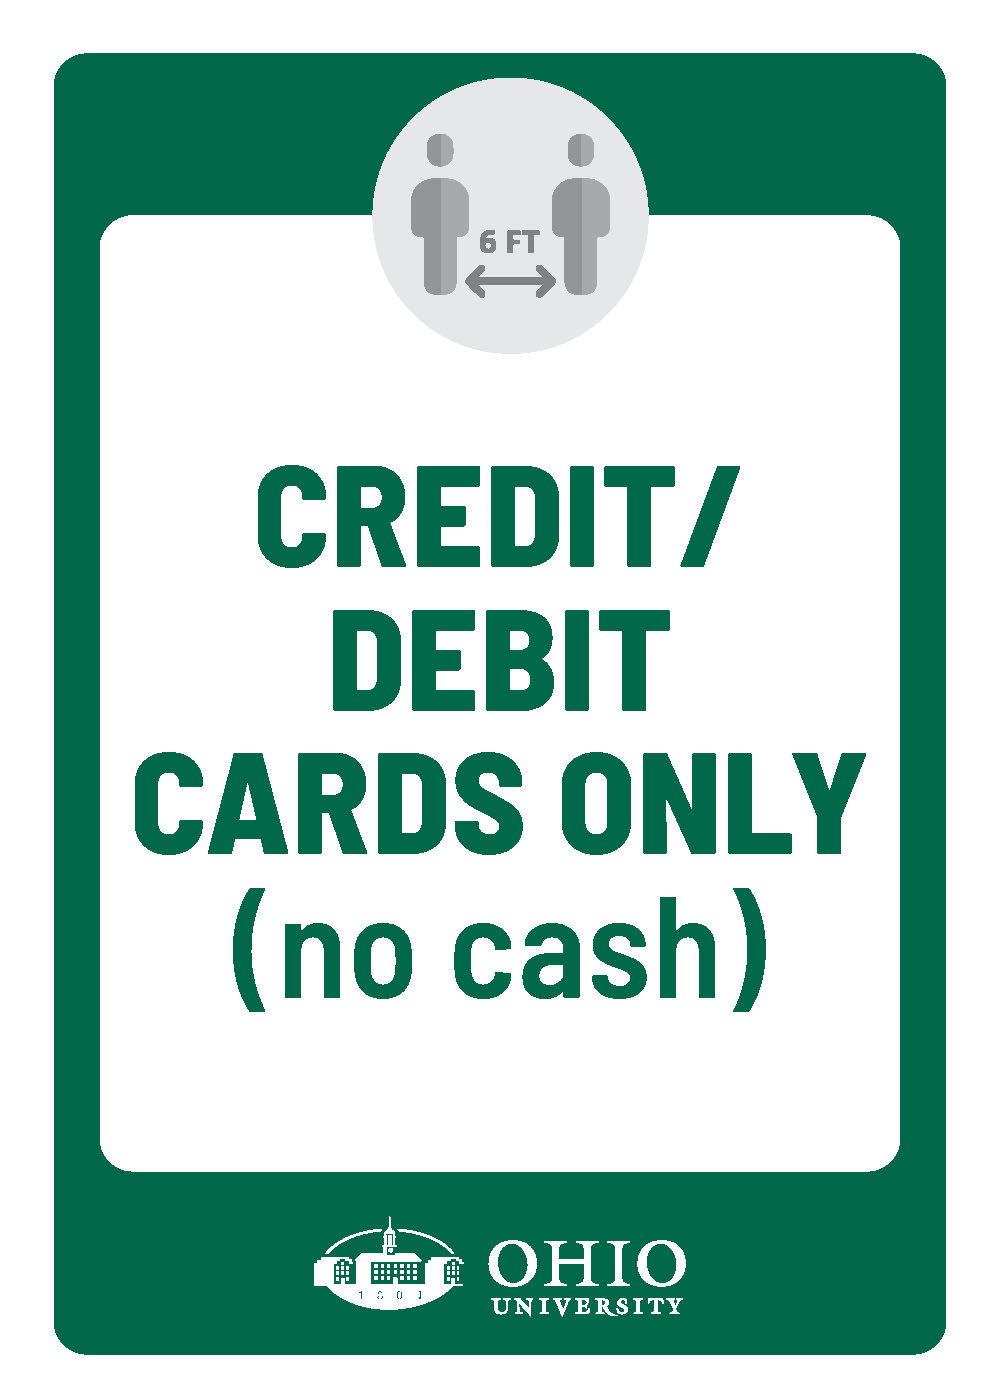 Sign that says: Credit/Debit cards only. no cash